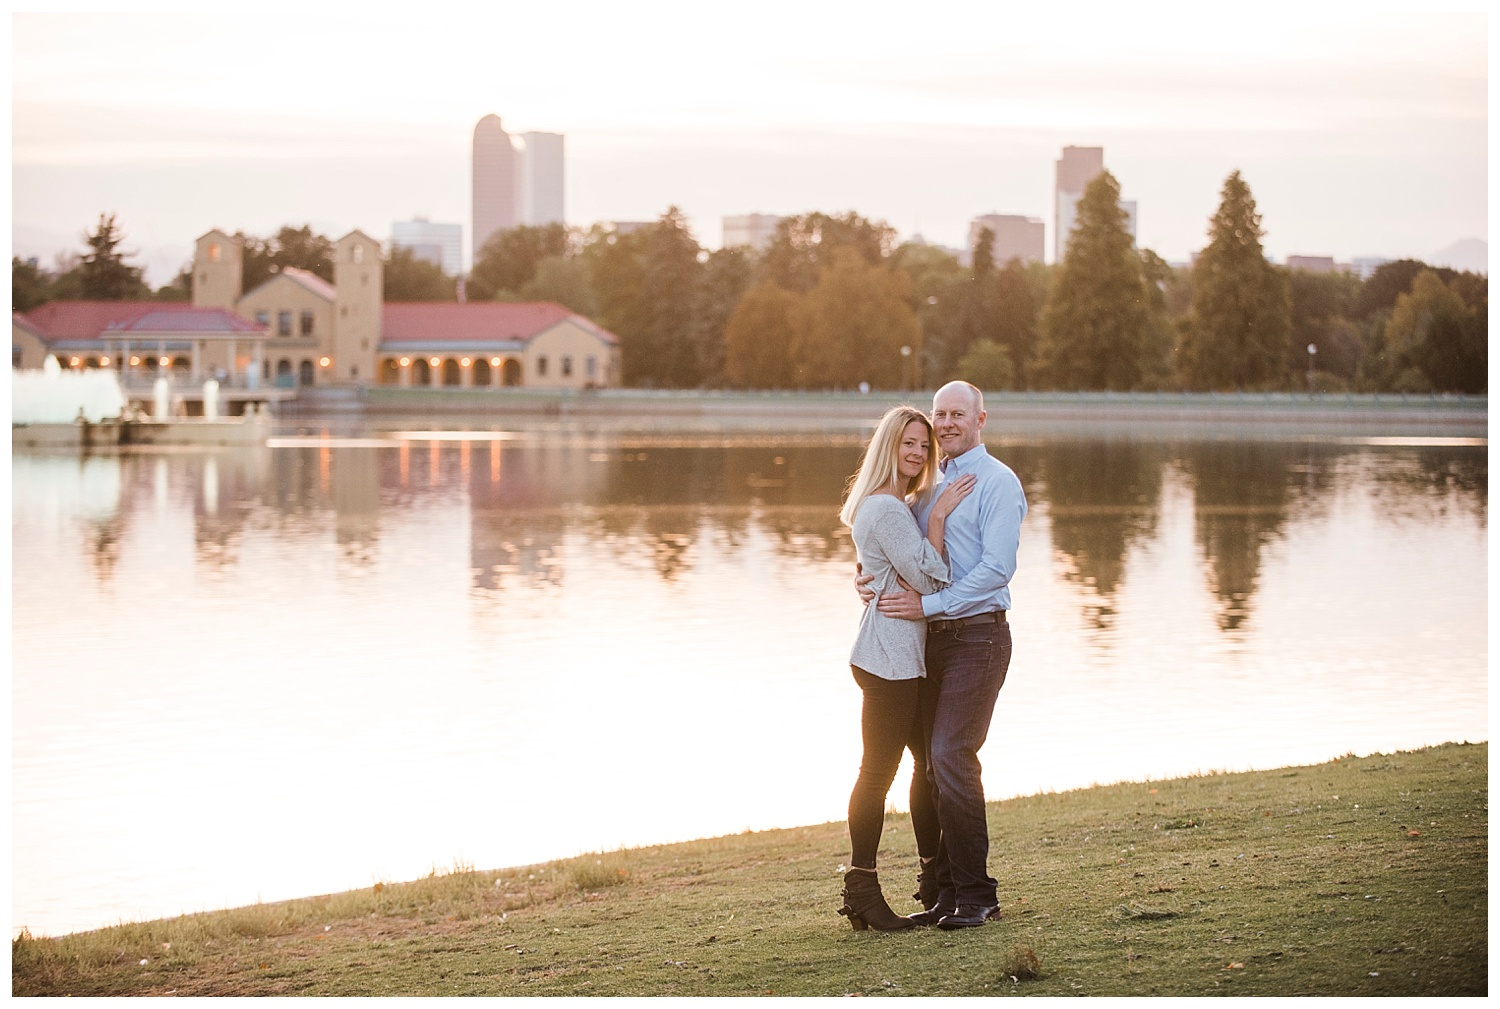 City_Park_Denver_Colorado_Engagement_Session_Apollo_Fields_Weddings_007.jpg